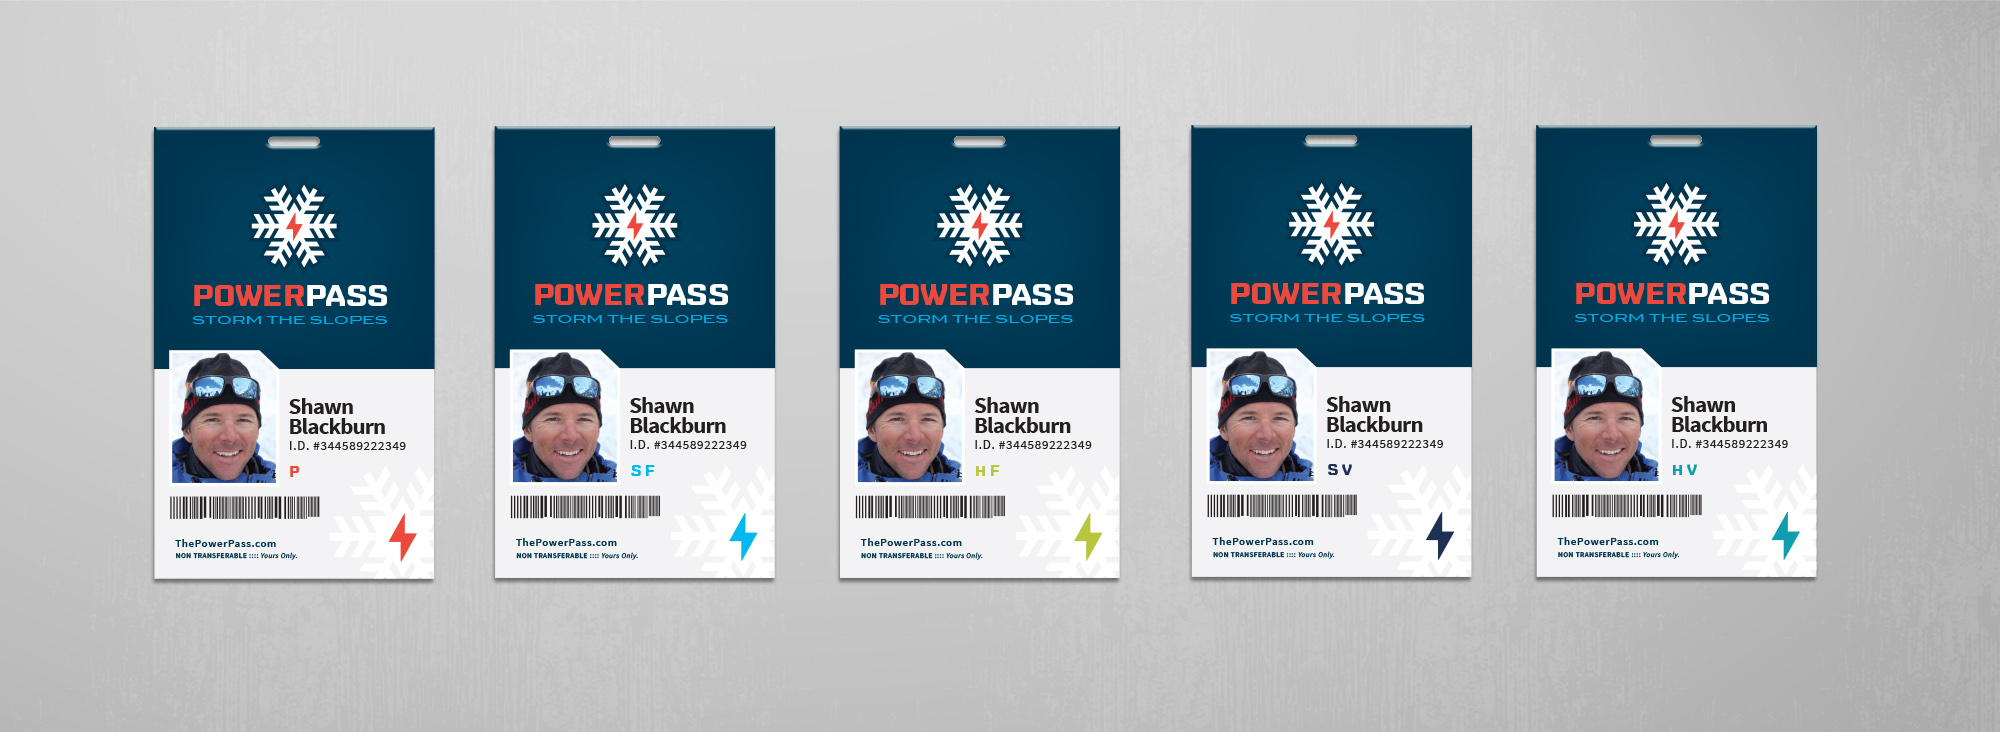 Powerpass lift ticket designs